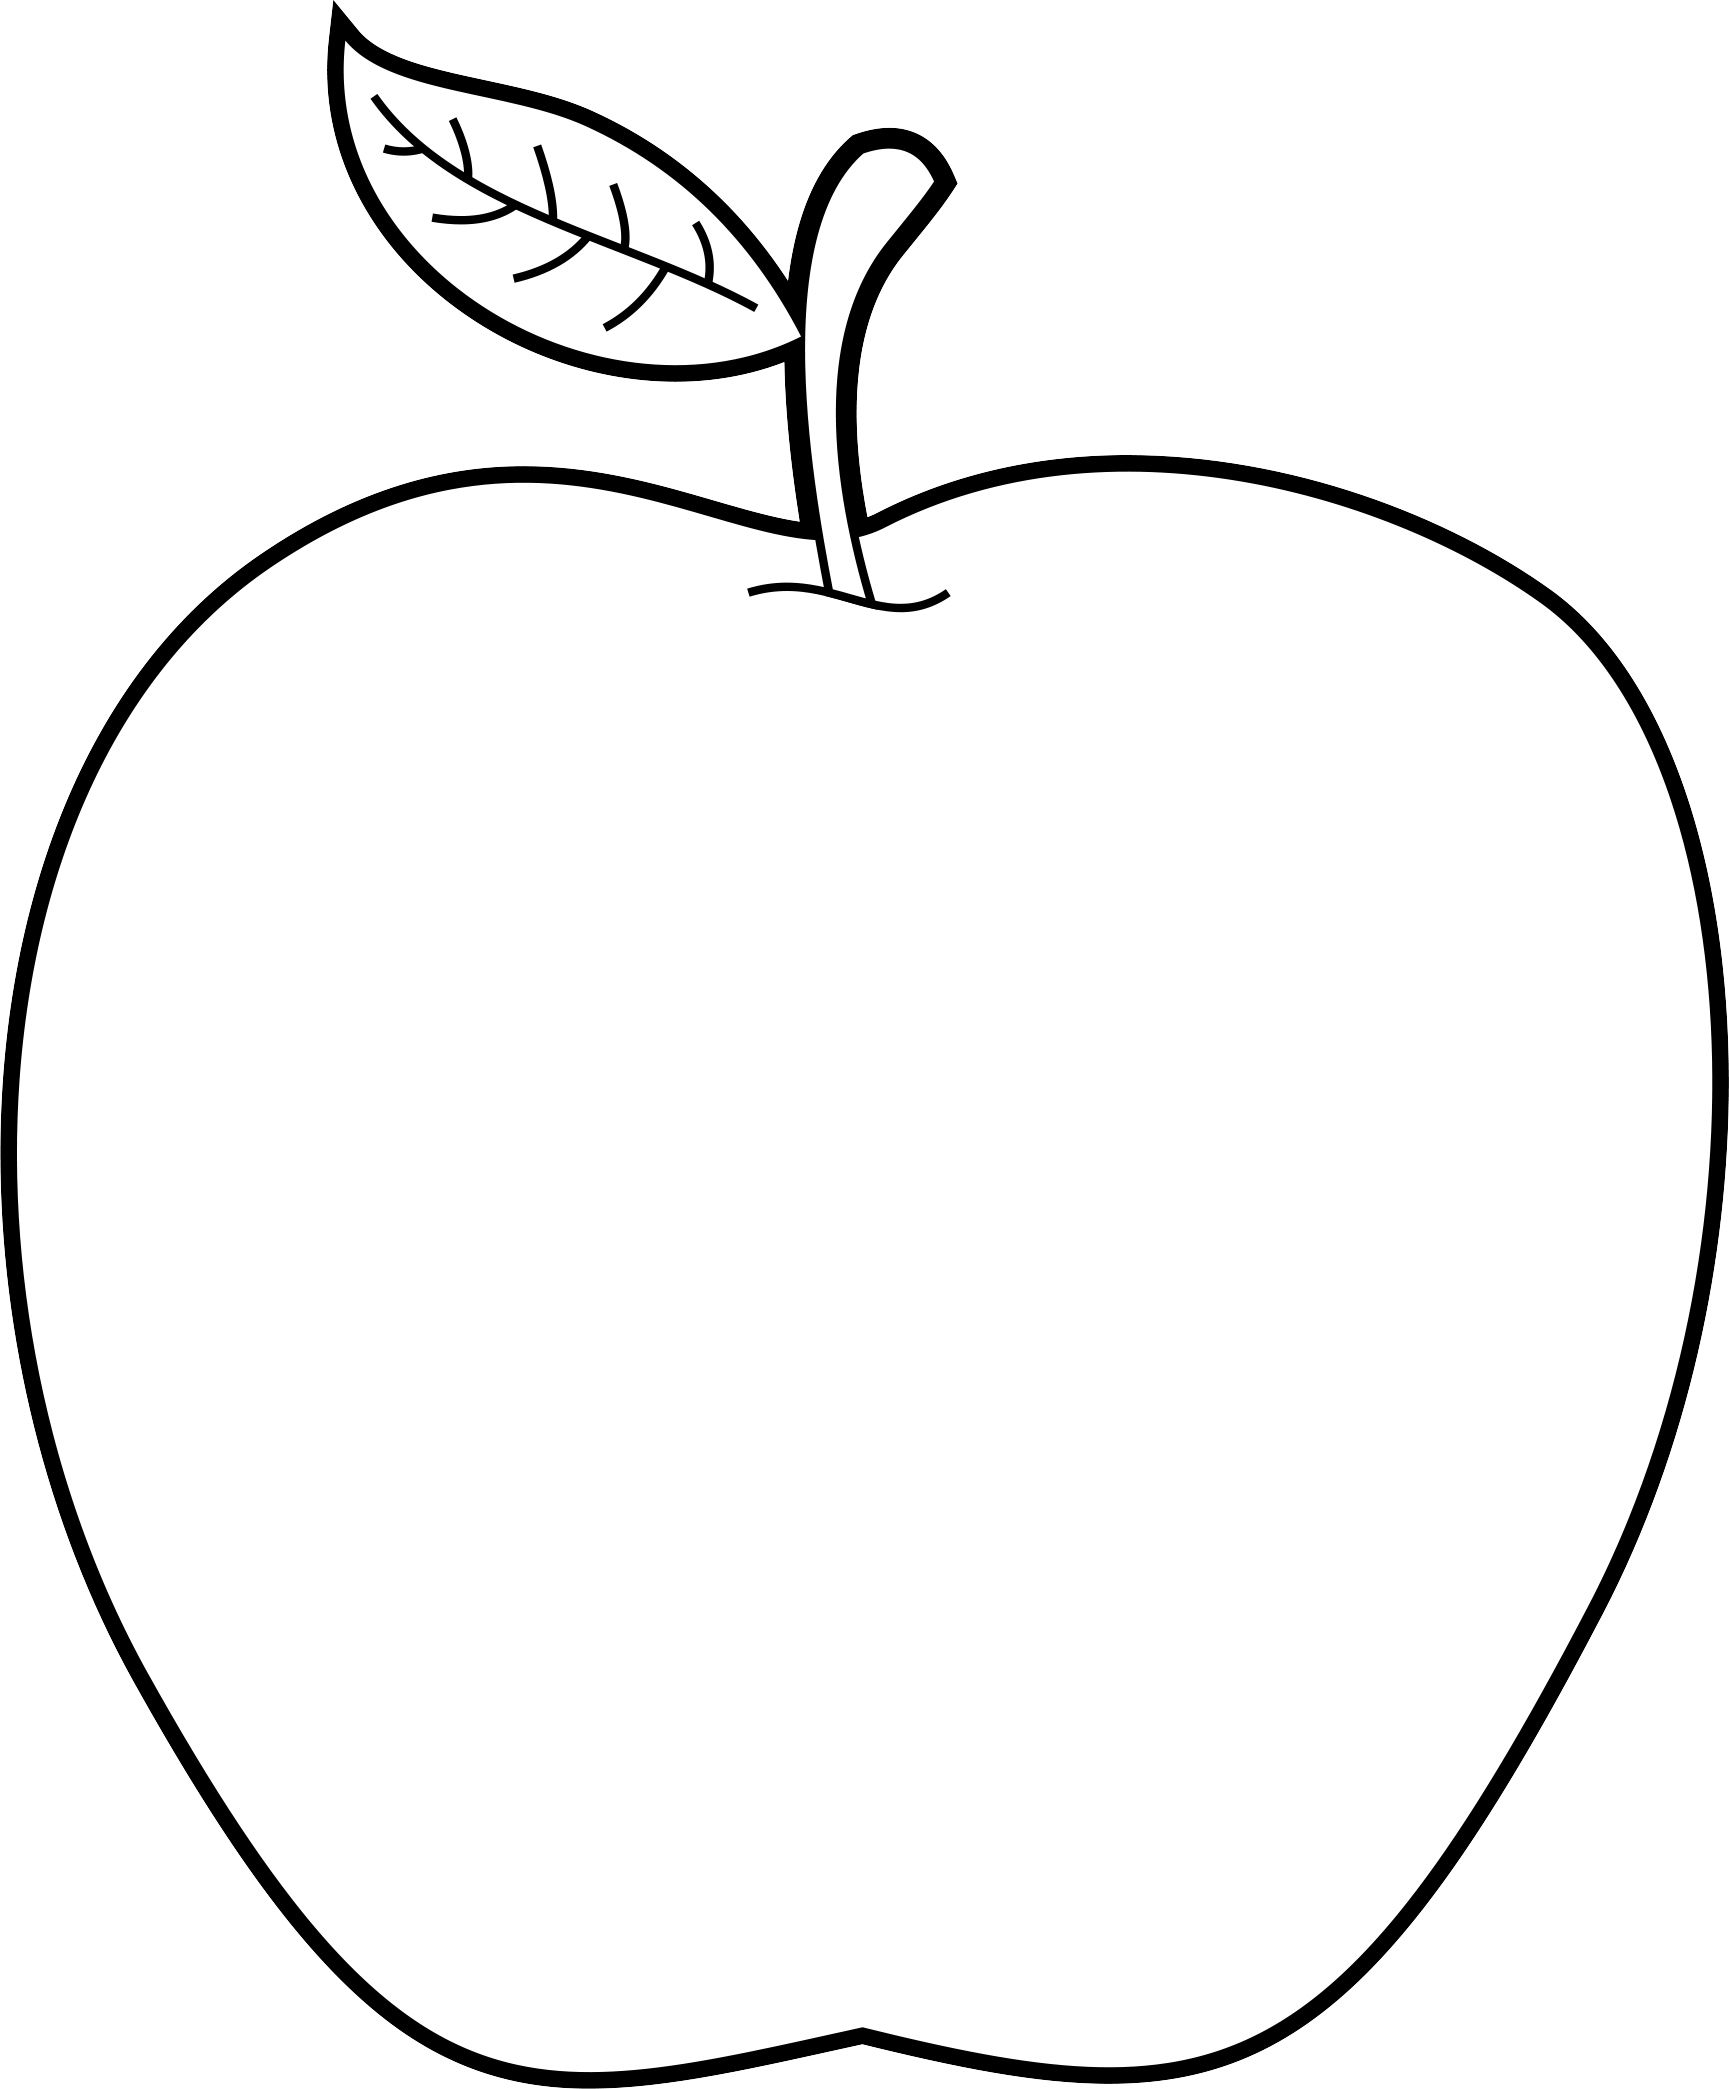 Alphabet Clip Art A H Freebies Contains 16 Images Files Which Includes 8 Color Images And 8 Black White These Apple Clip Art Clip Art Fruit Coloring Pages